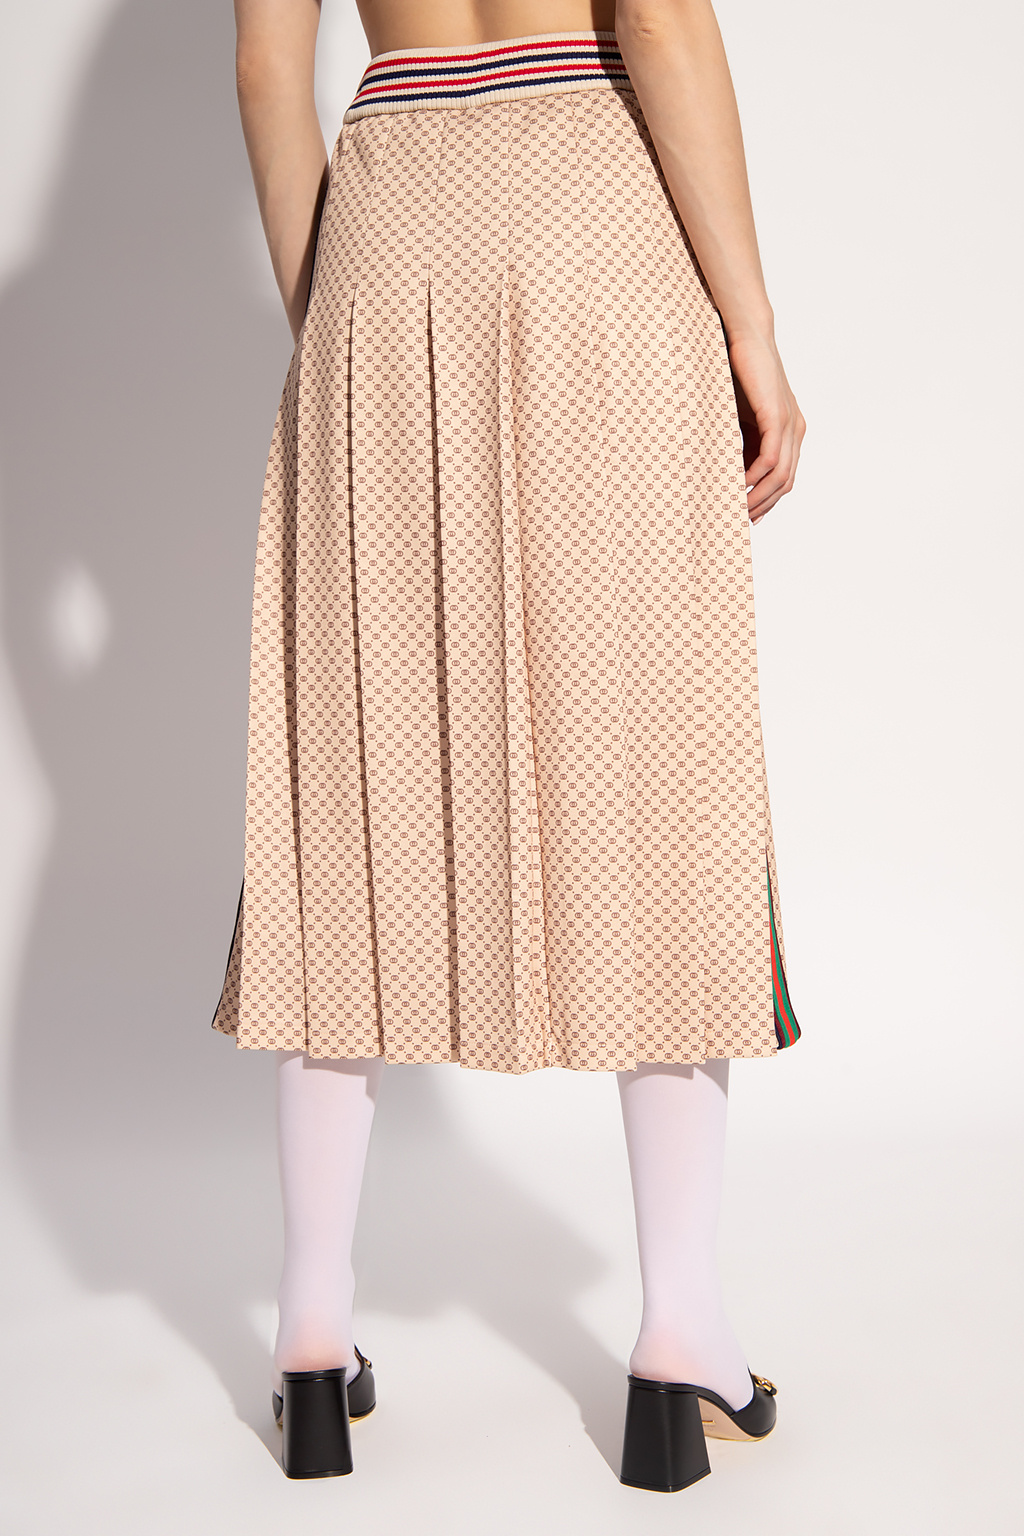 Gucci Pleated skirt with logo